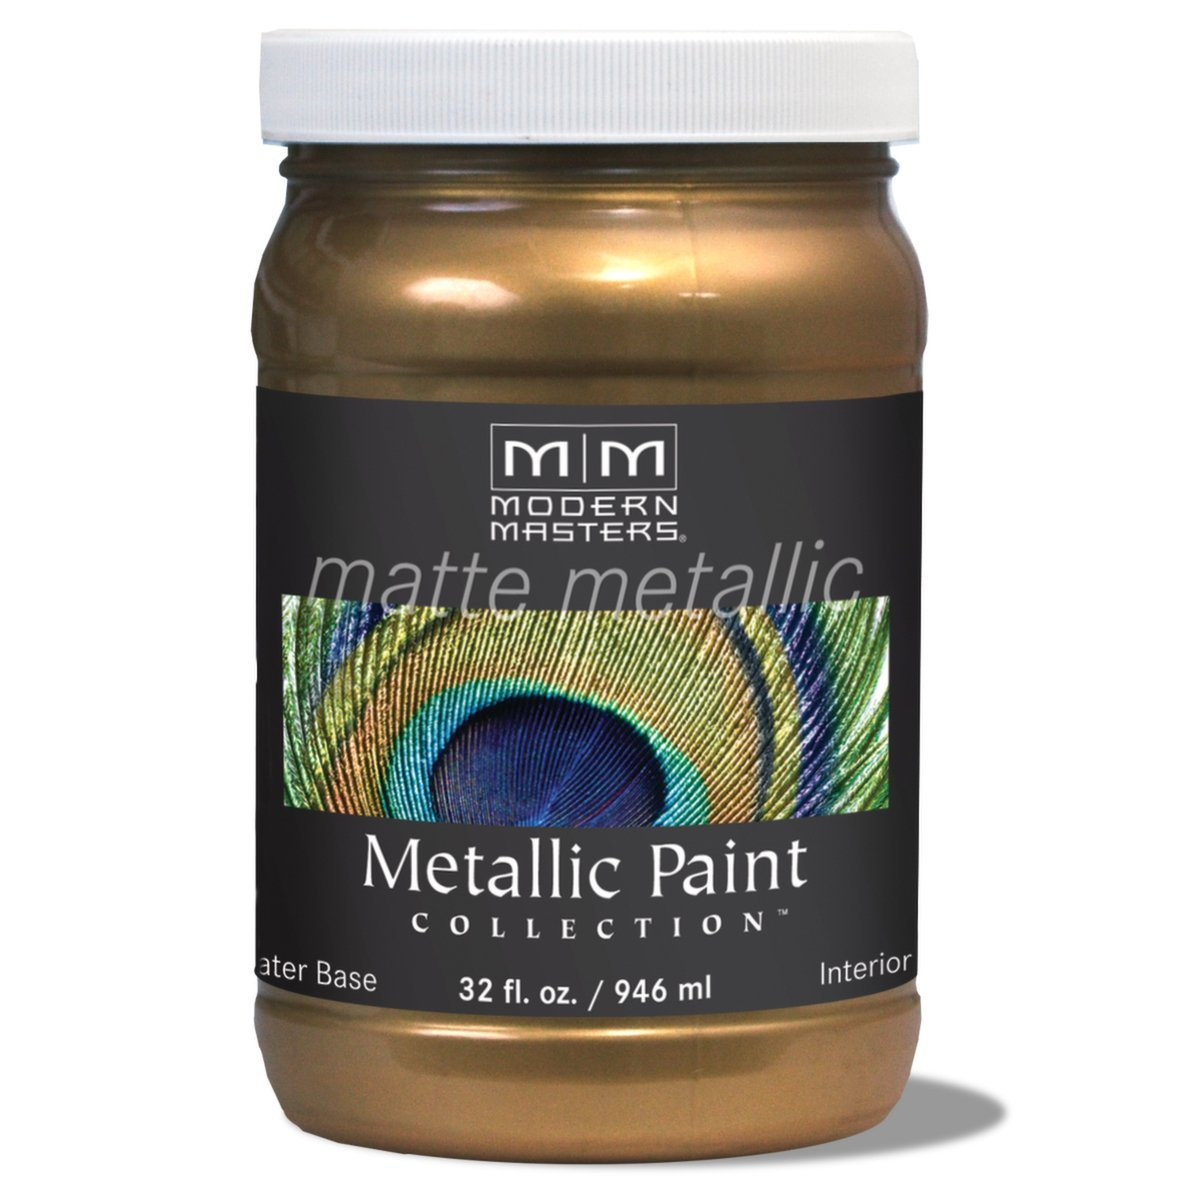 MM238 Matte Metallic Paint, Blackened Bronze, Quart, Uniquely combined Pigments and particles create a palette of the 15 most popular metallic colors By Modern Masters